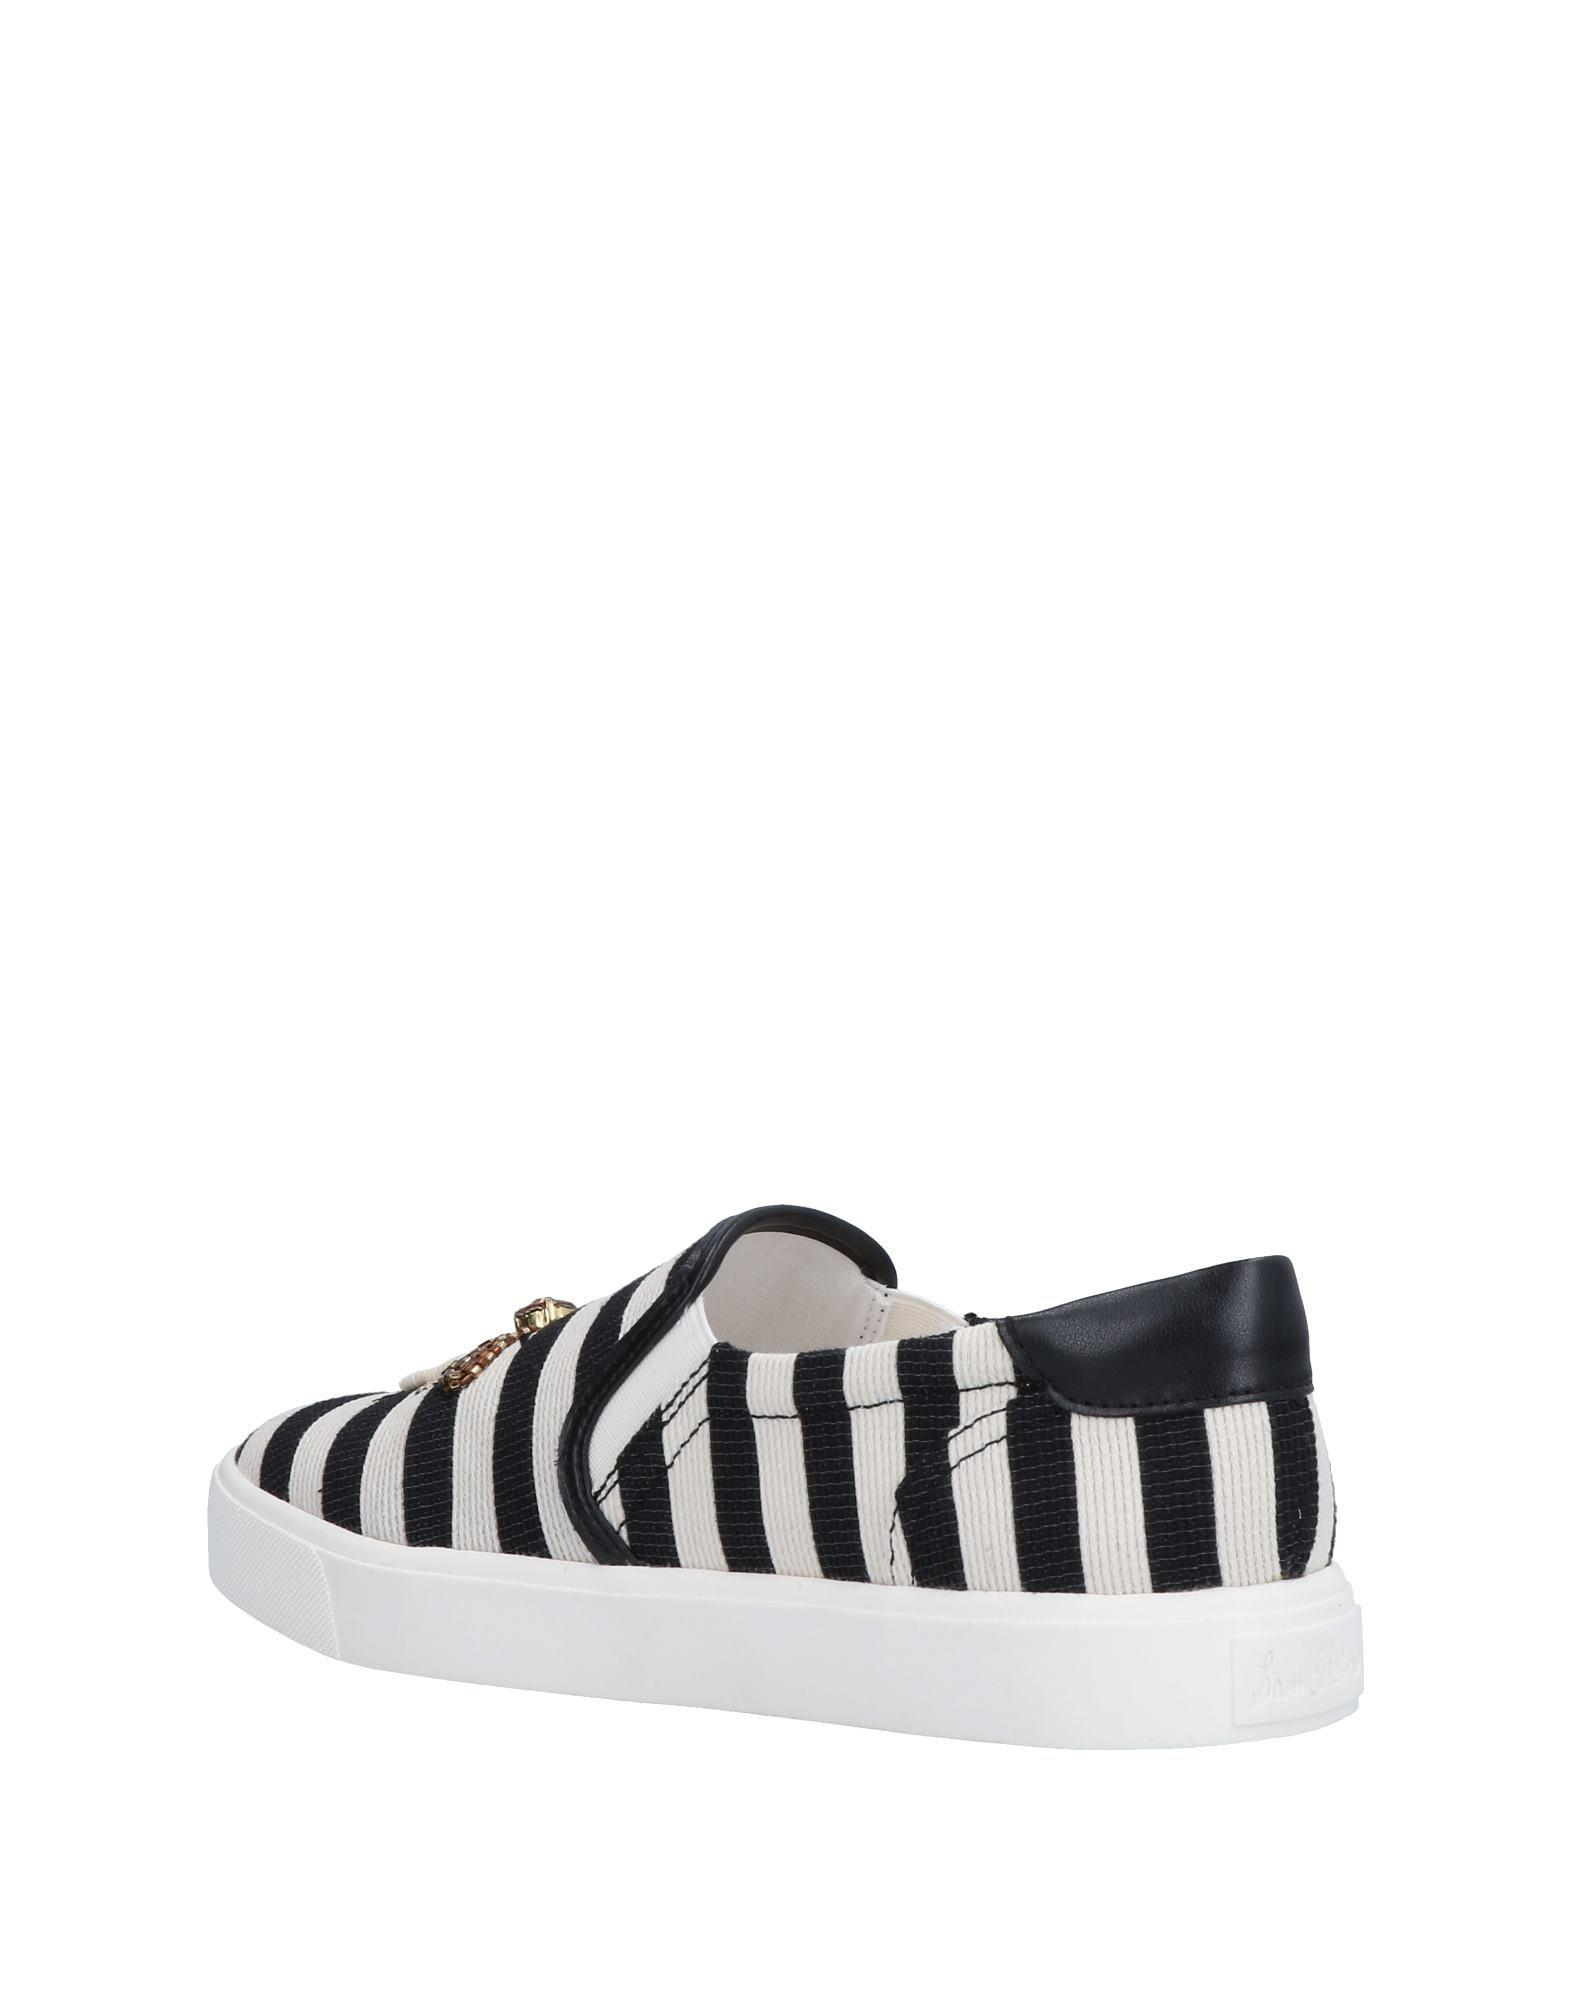 Sam Edelman Low-tops & Sneakers in Ivory (White)